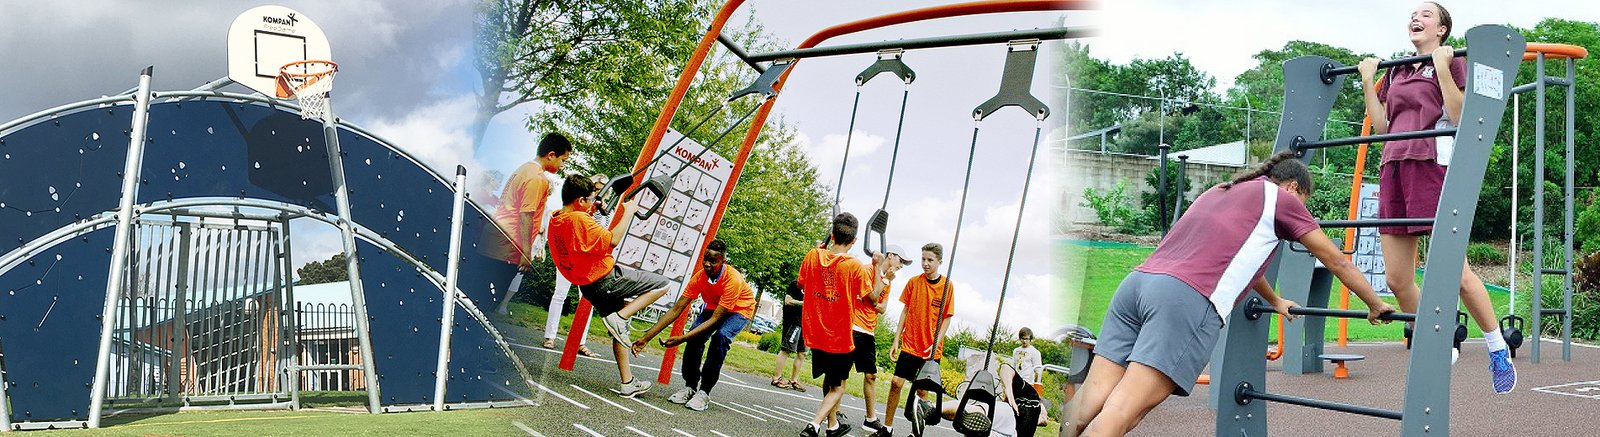 INSPIRING SECONDARY SCHOOL PLAYGROUNDS